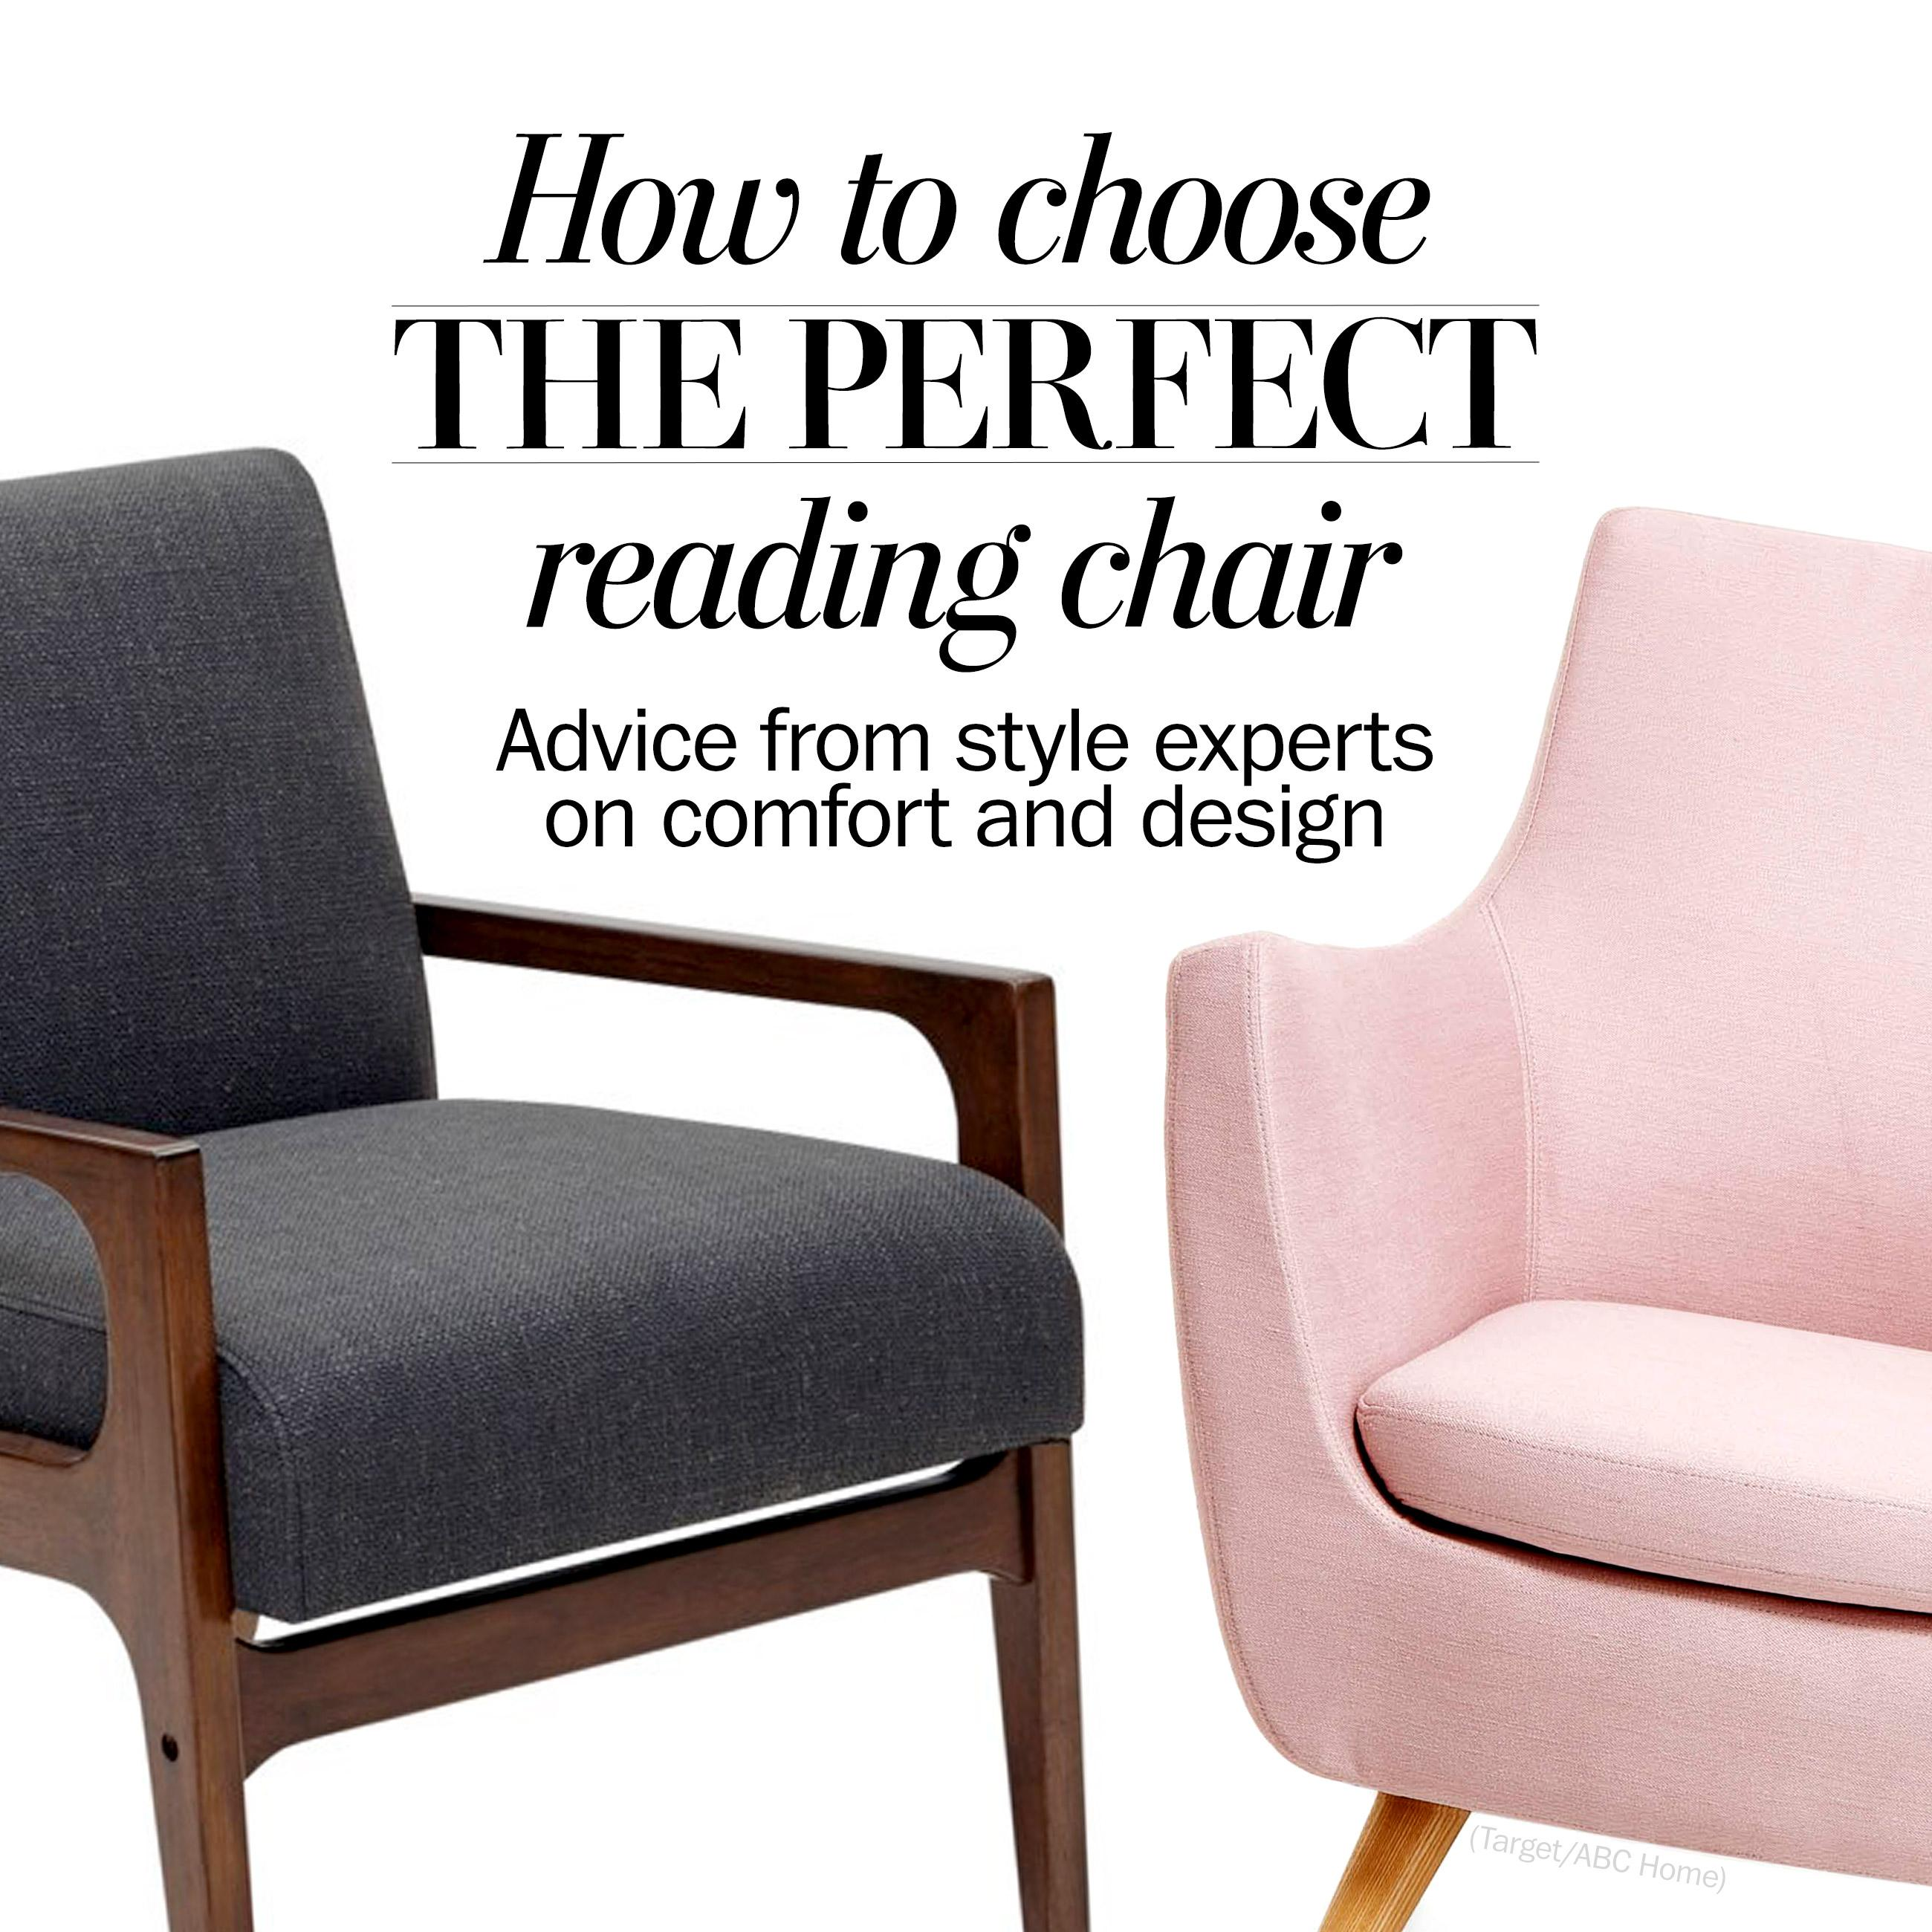 How to choose the perfect reading chair